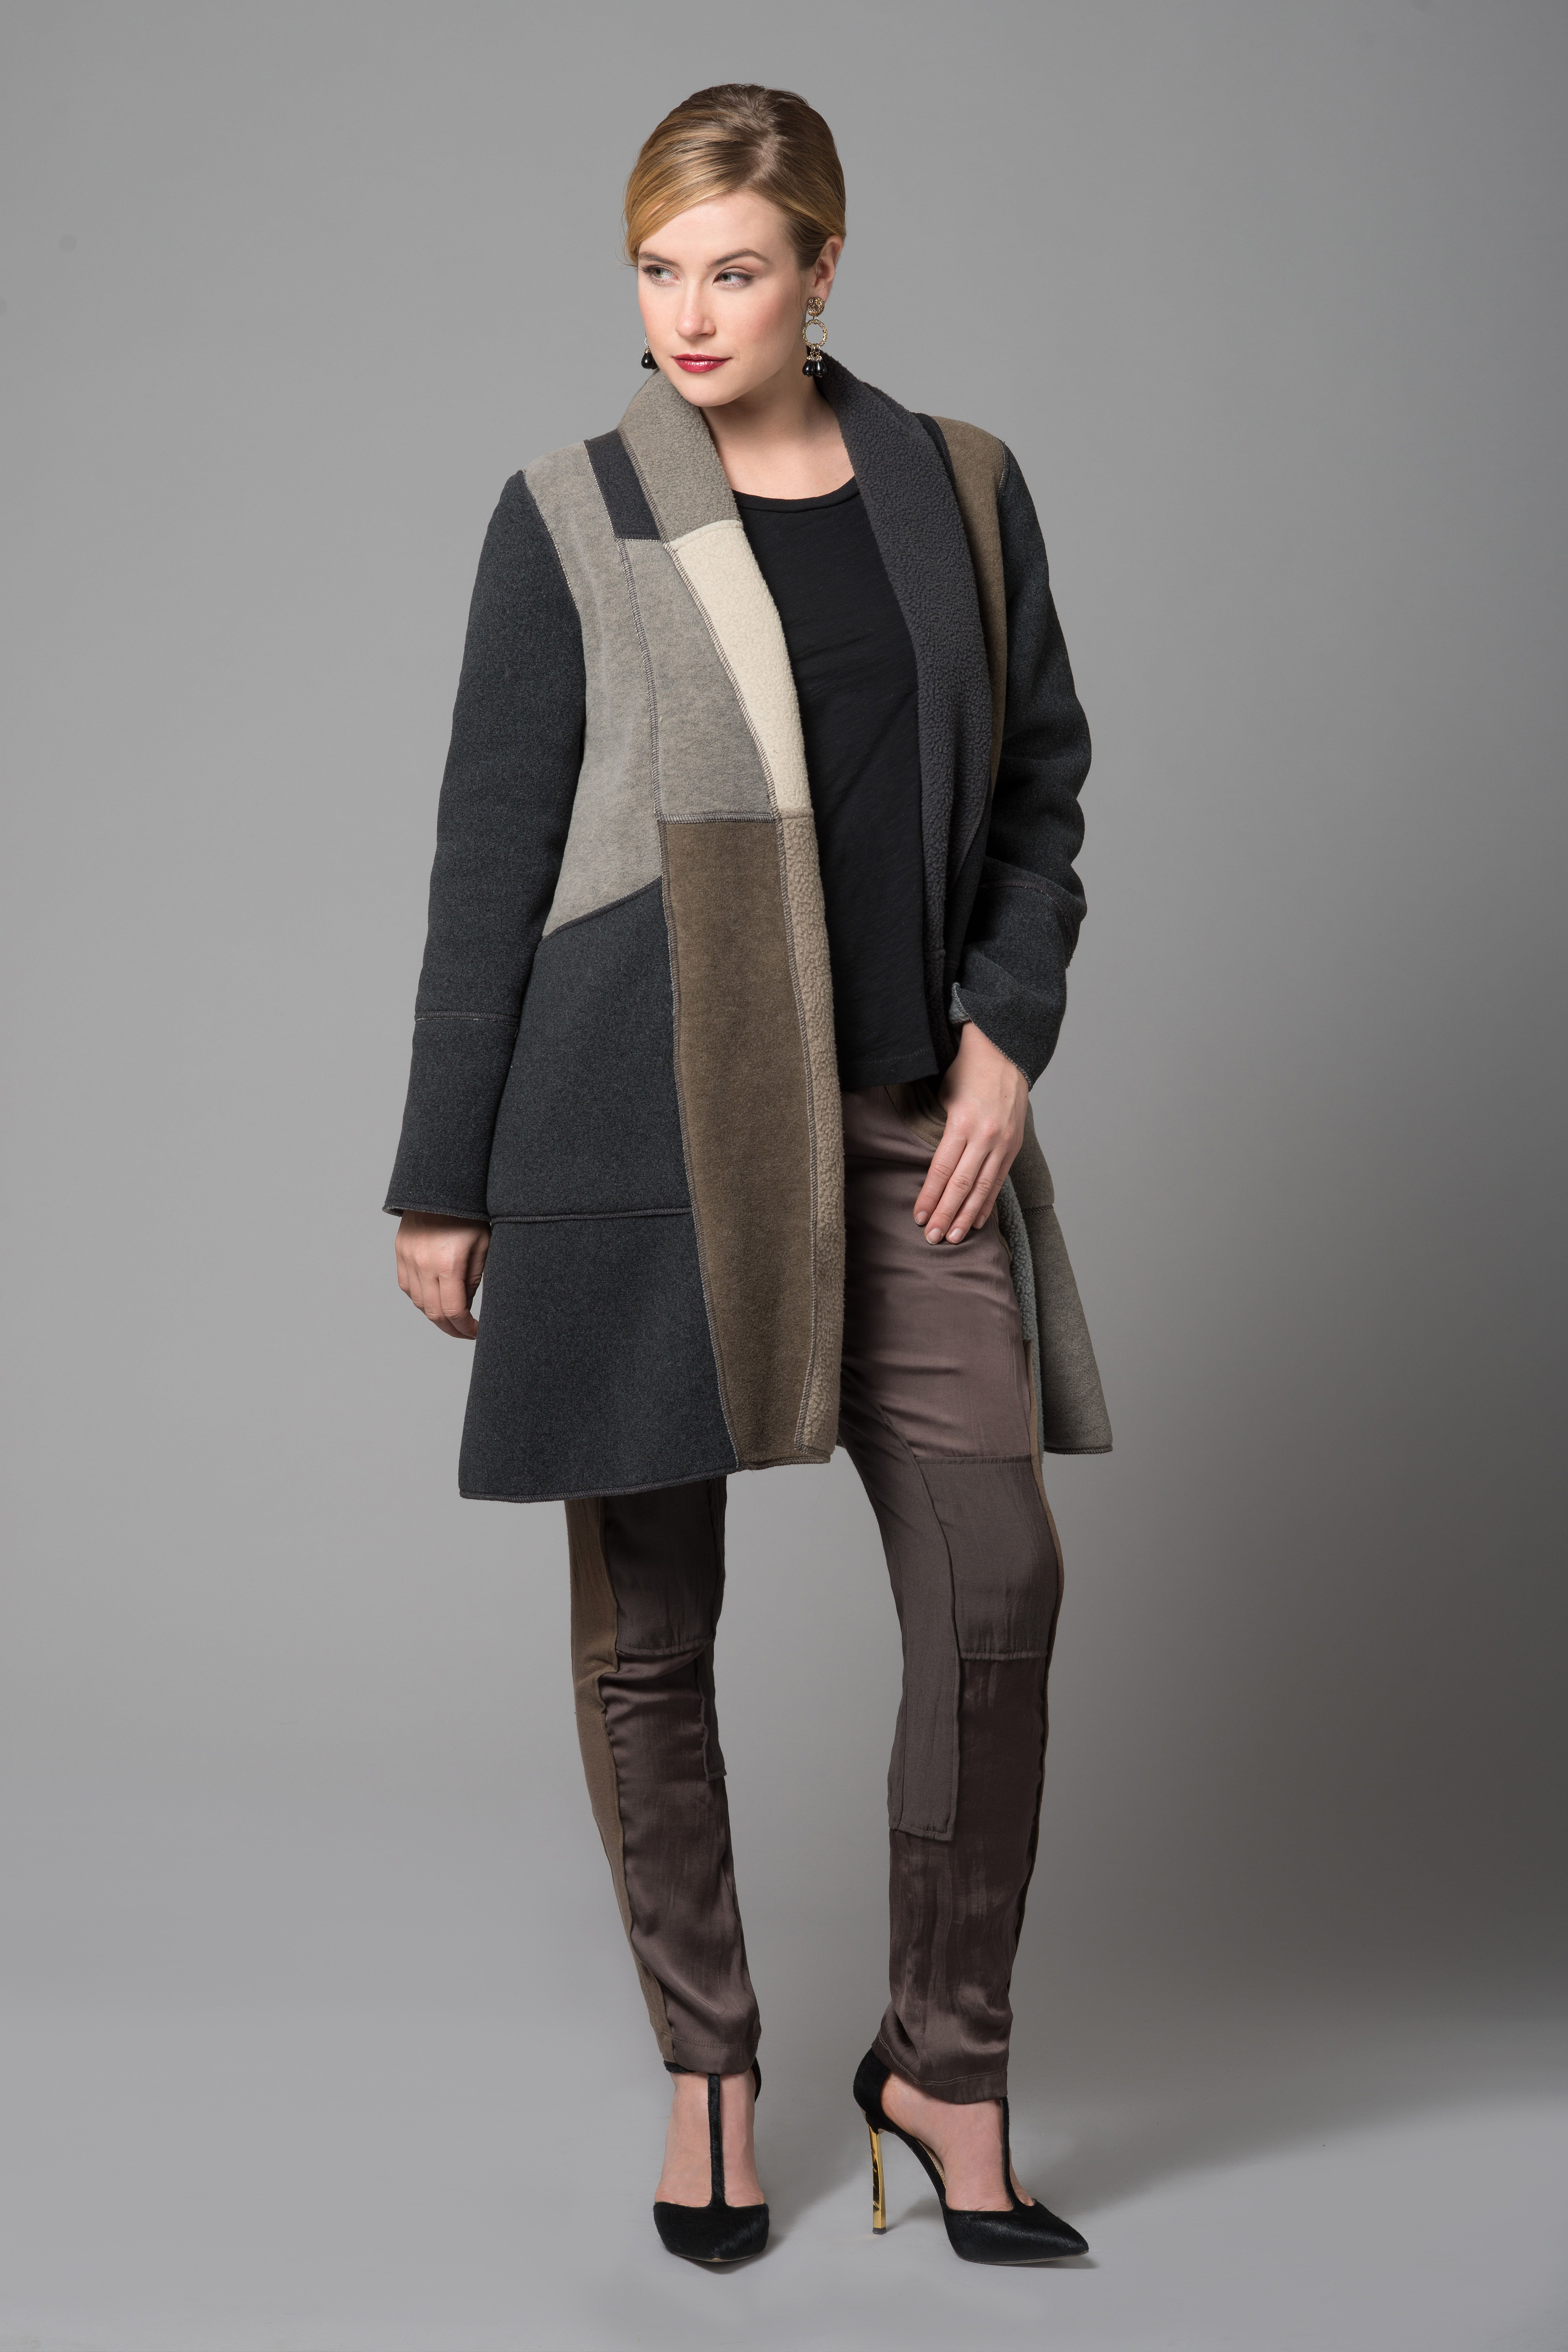 Multi Fleece Sylvia Jacket - neutral colors - sophisticated a-line shape - goes with everything! @cameleonjackets